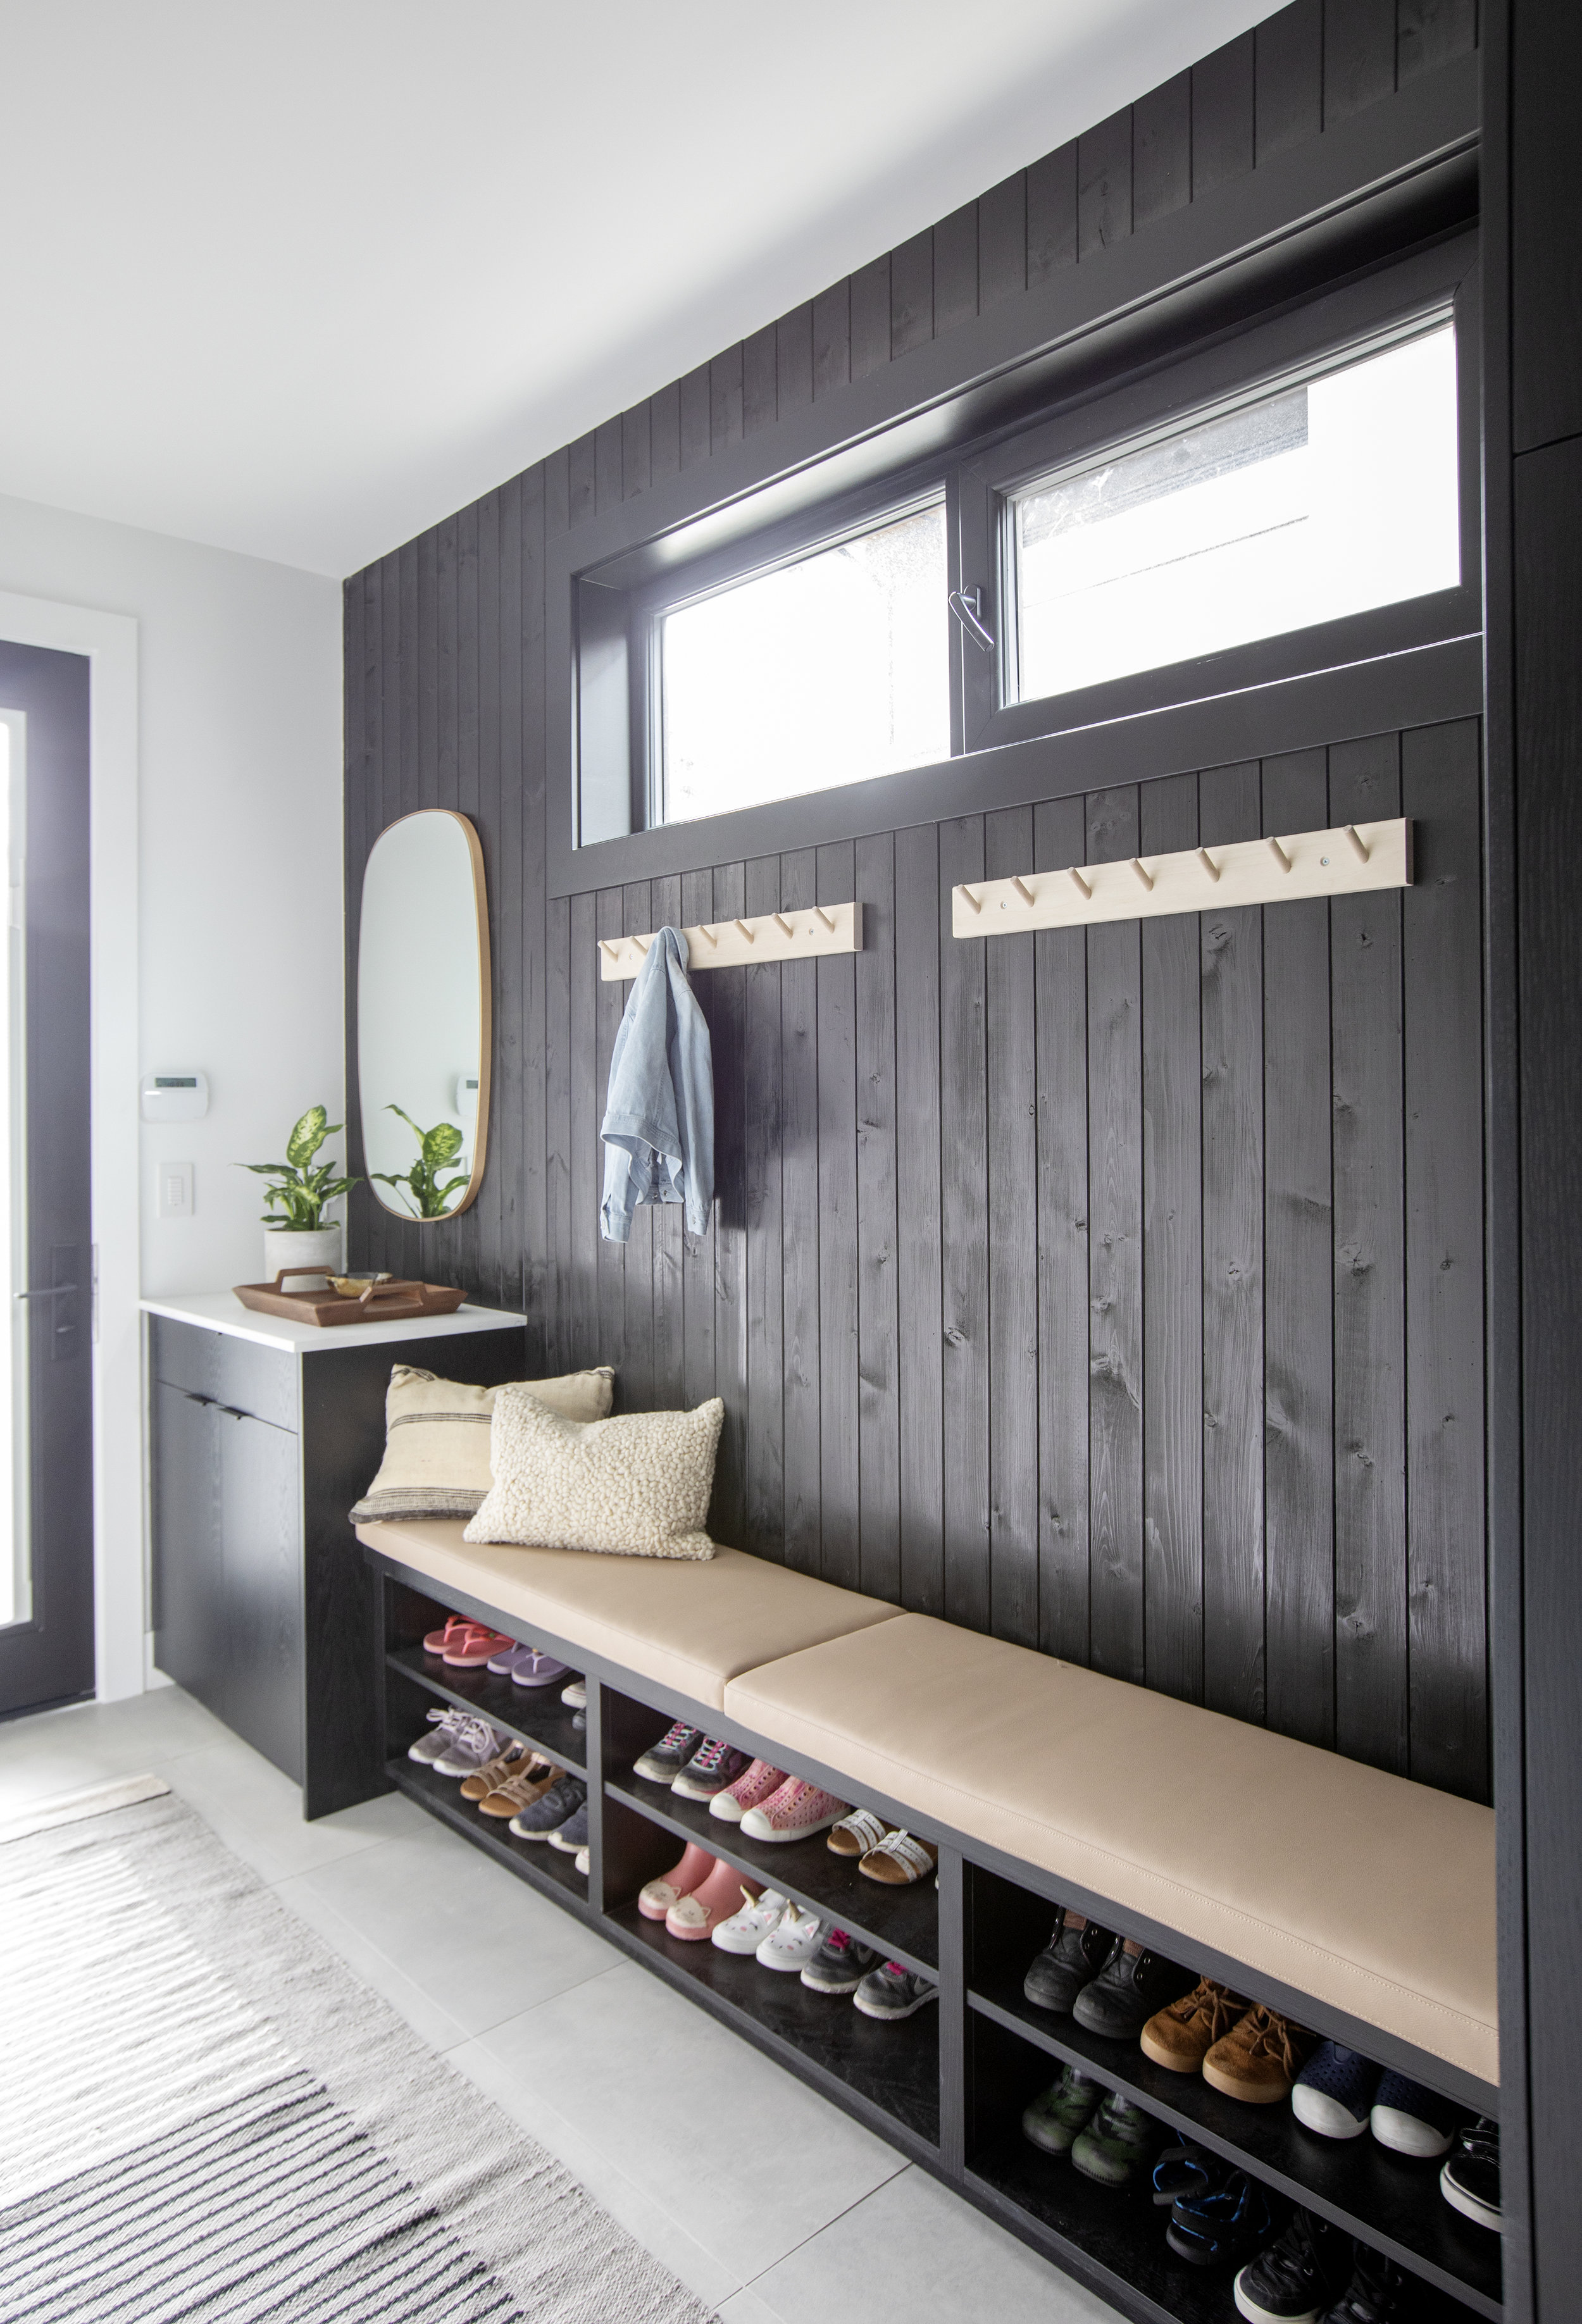 The mudroom of East 13th Street has a dark wooden panelled accent wall with a long bench in front of it with built in shoe rack for the whole family.